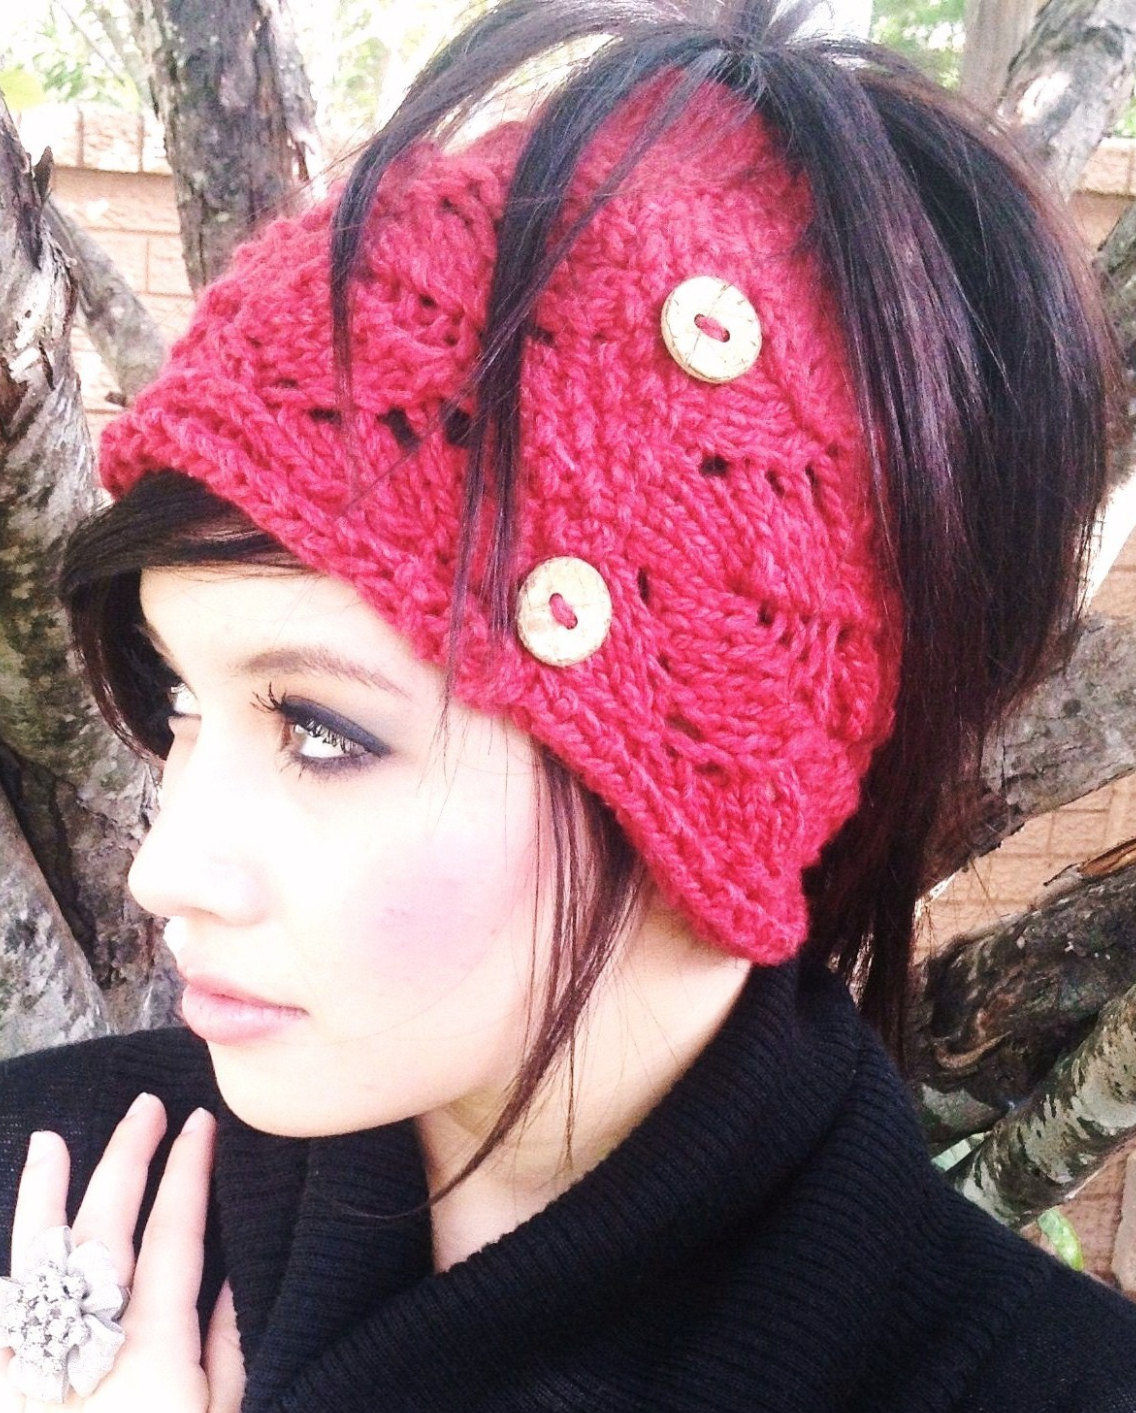 Ponytail Beanie Hat Unique Messy Bun and Ponytail Hat Knitting Patterns Of Amazing 48 Pictures Ponytail Beanie Hat